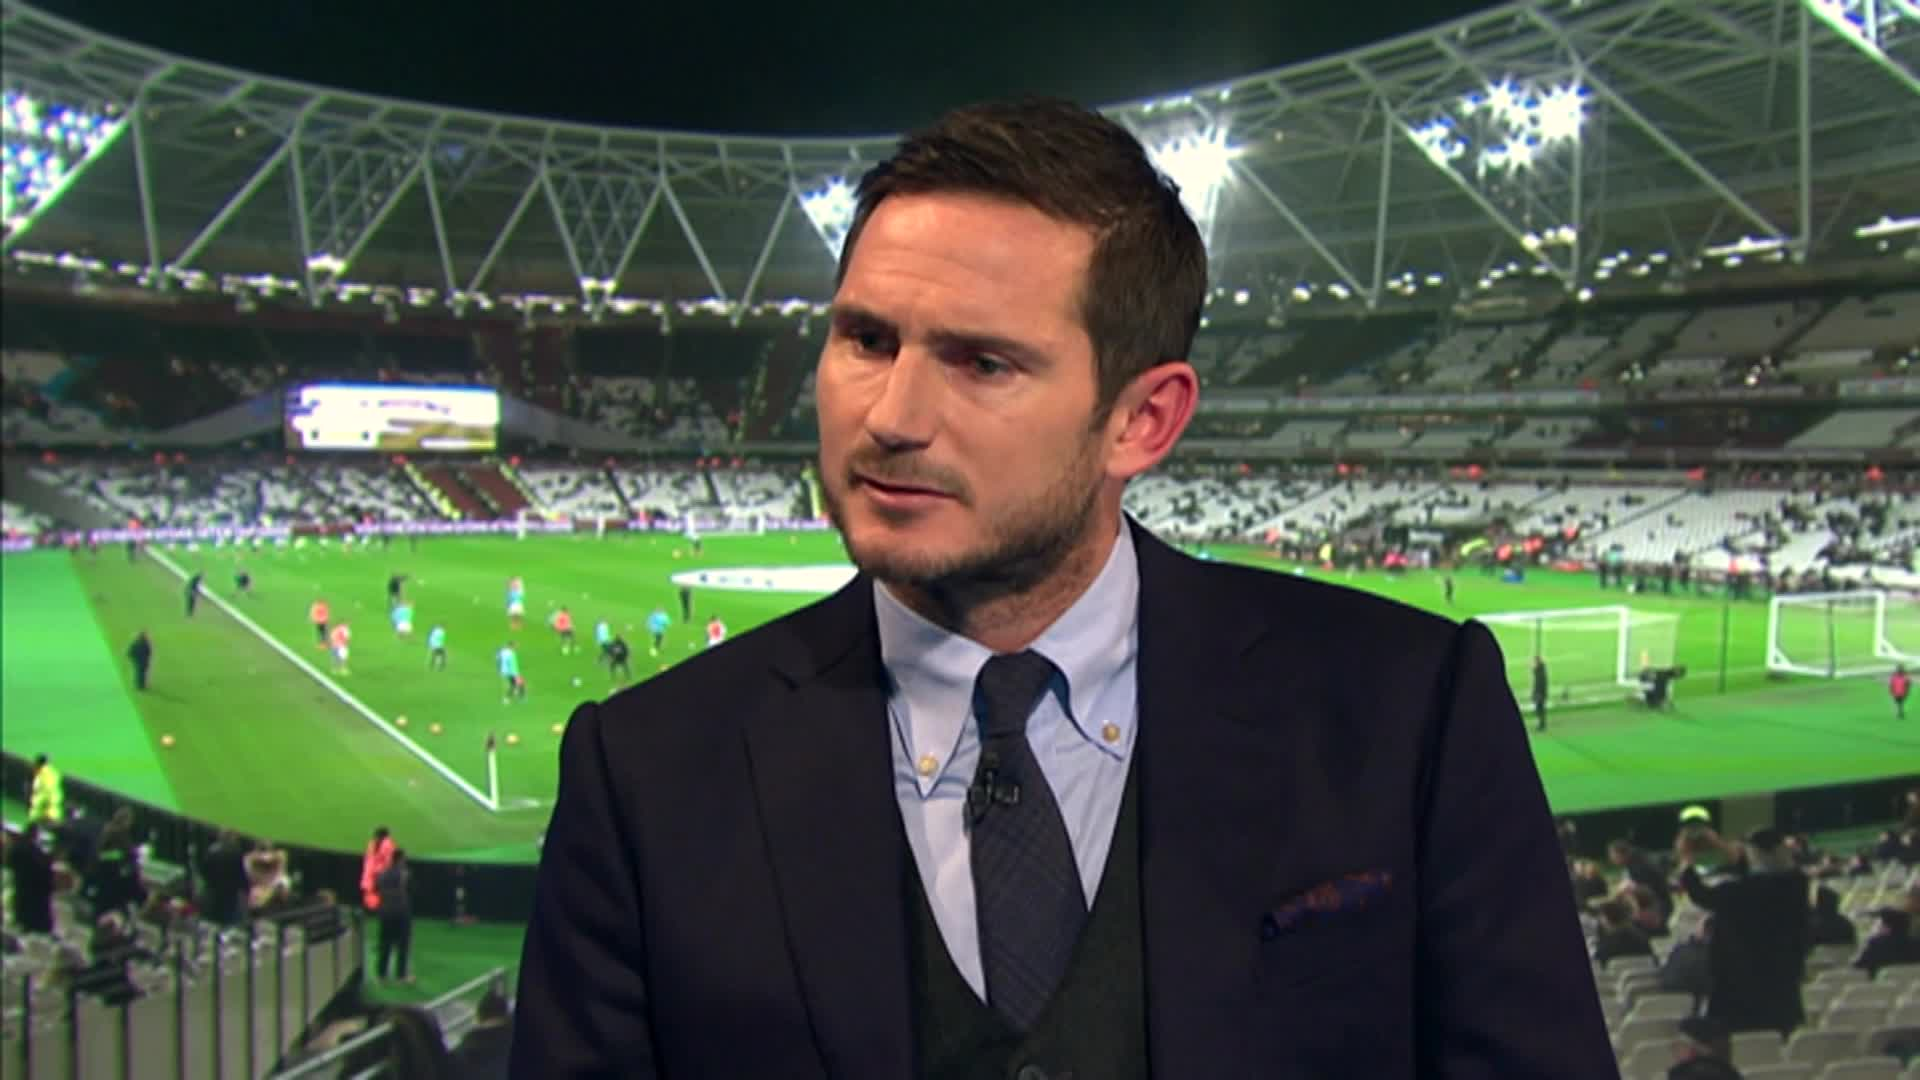 Frank Lampard considers Chelsea has to be very solid defensively